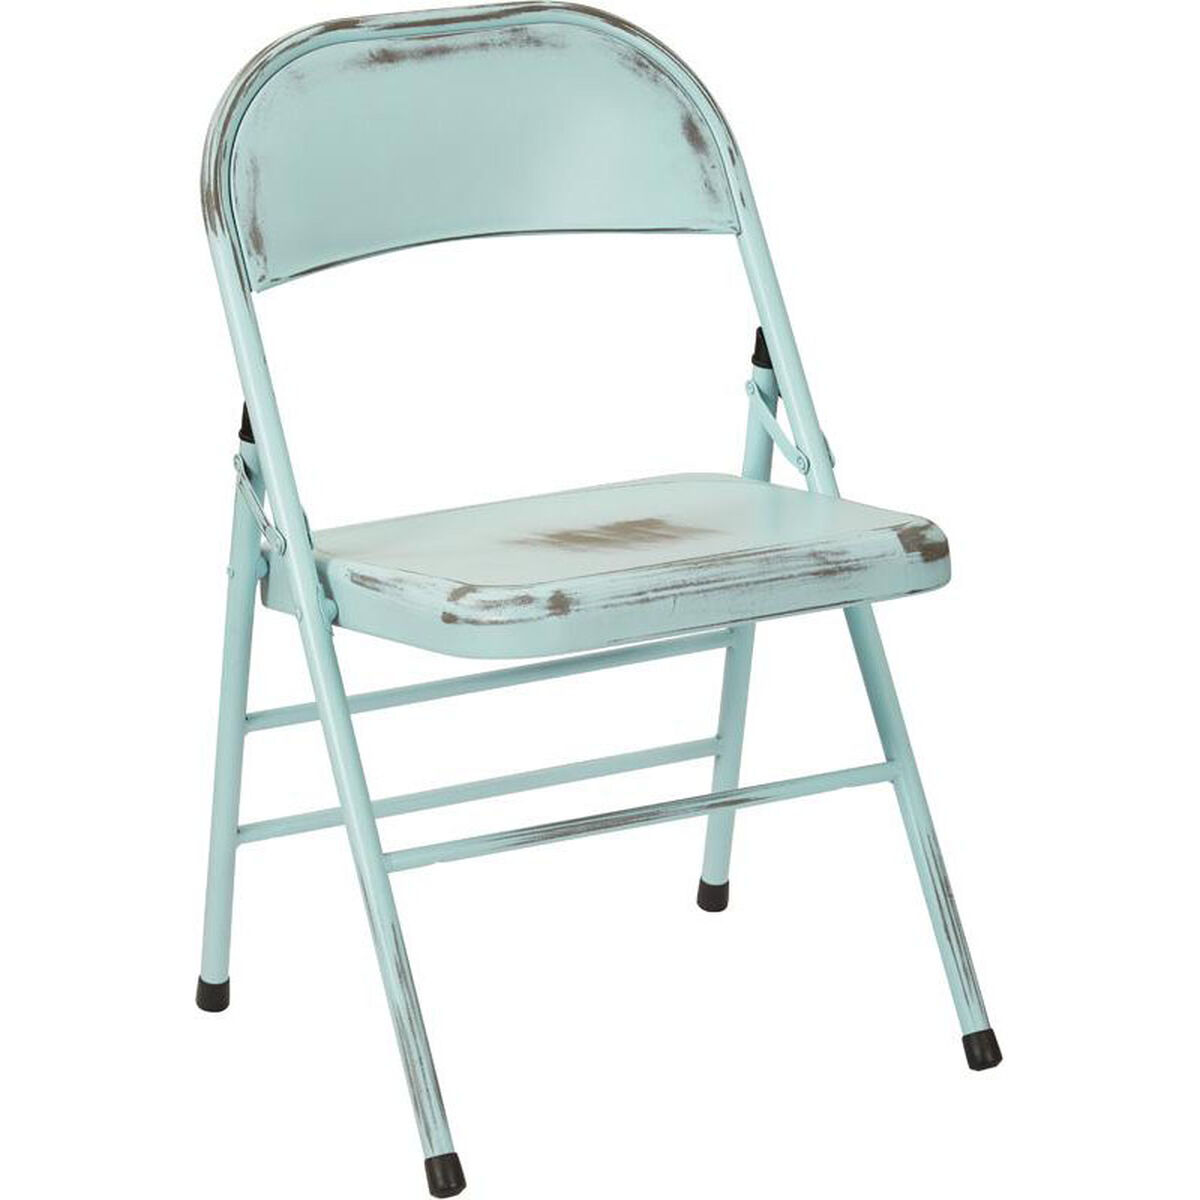 ... Our OSP Designs Bristow Distressed Steel Folding Chair - Set of 2 -  Antique Sky Blue ... - Set Of 2 Blue Folding Chair BRW831A2-ASB FoldingChairs4Less.com